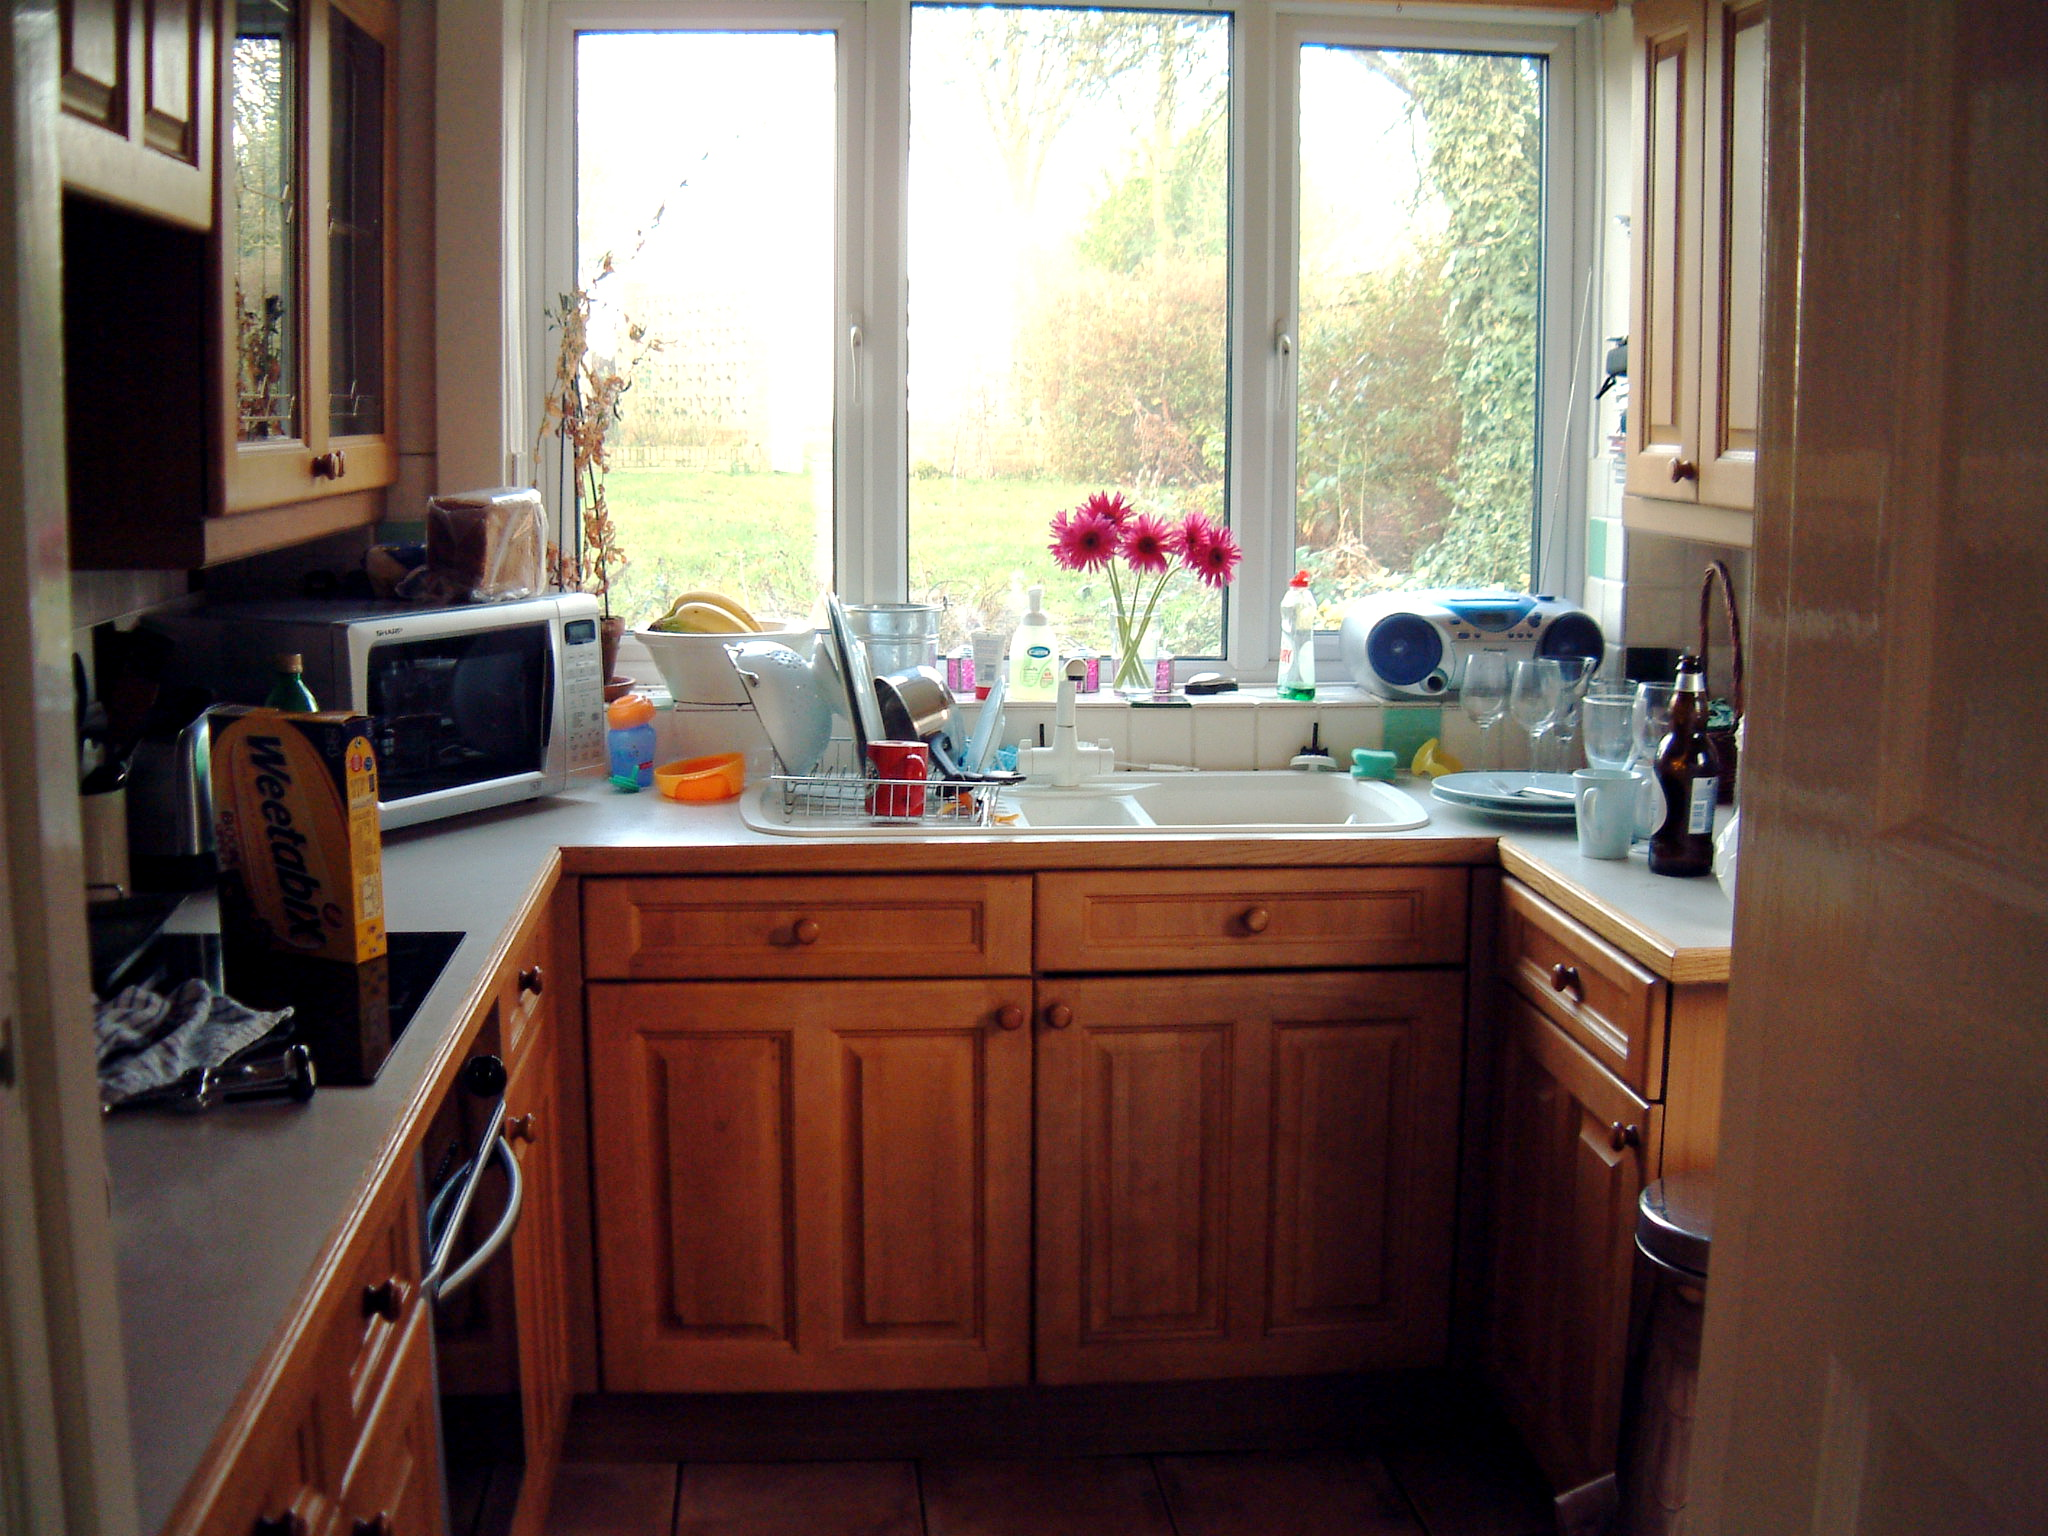 Space saving tips for small kitchens interior for Small kitchen interior